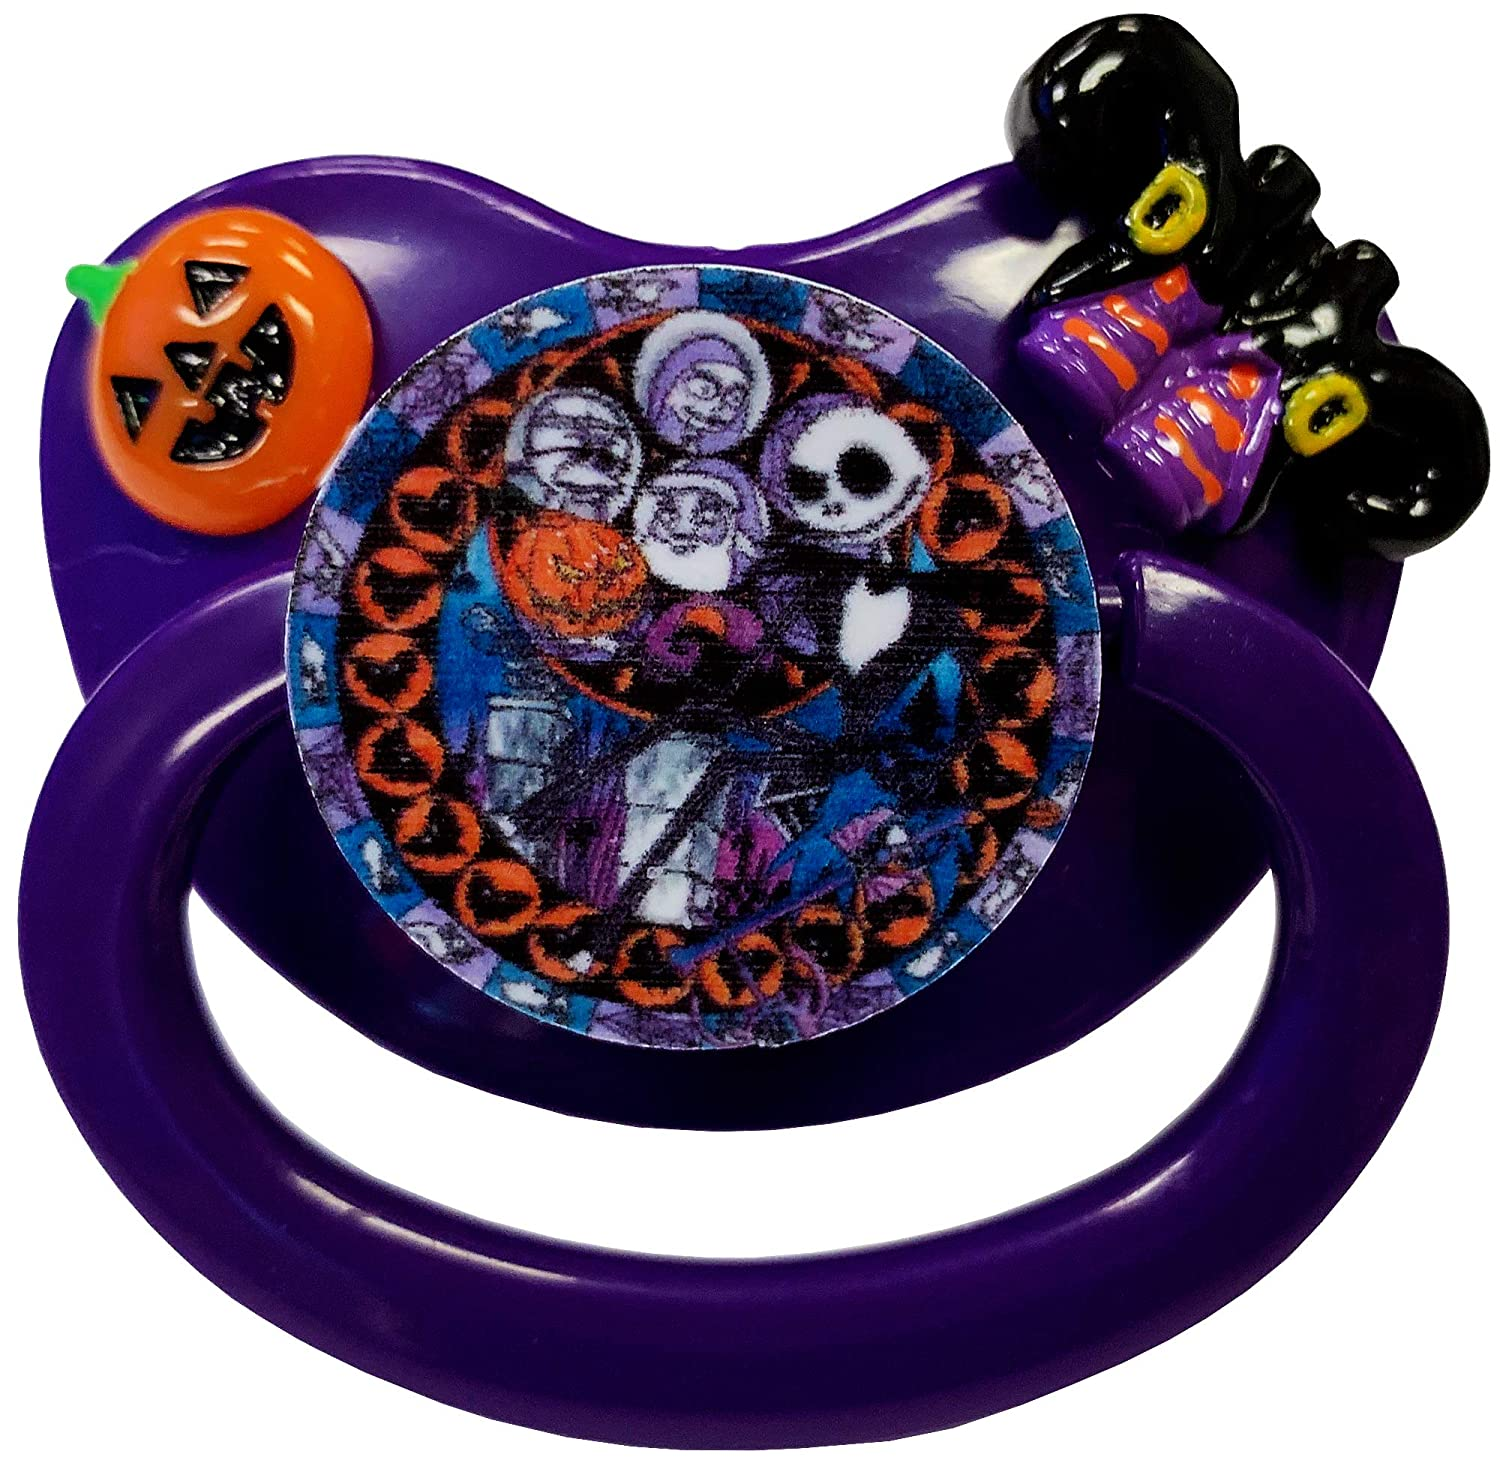 Envy Body Shop Adult Sized Cute Gem Halloween Pacifier Dummy for Adult Halloween Baby...